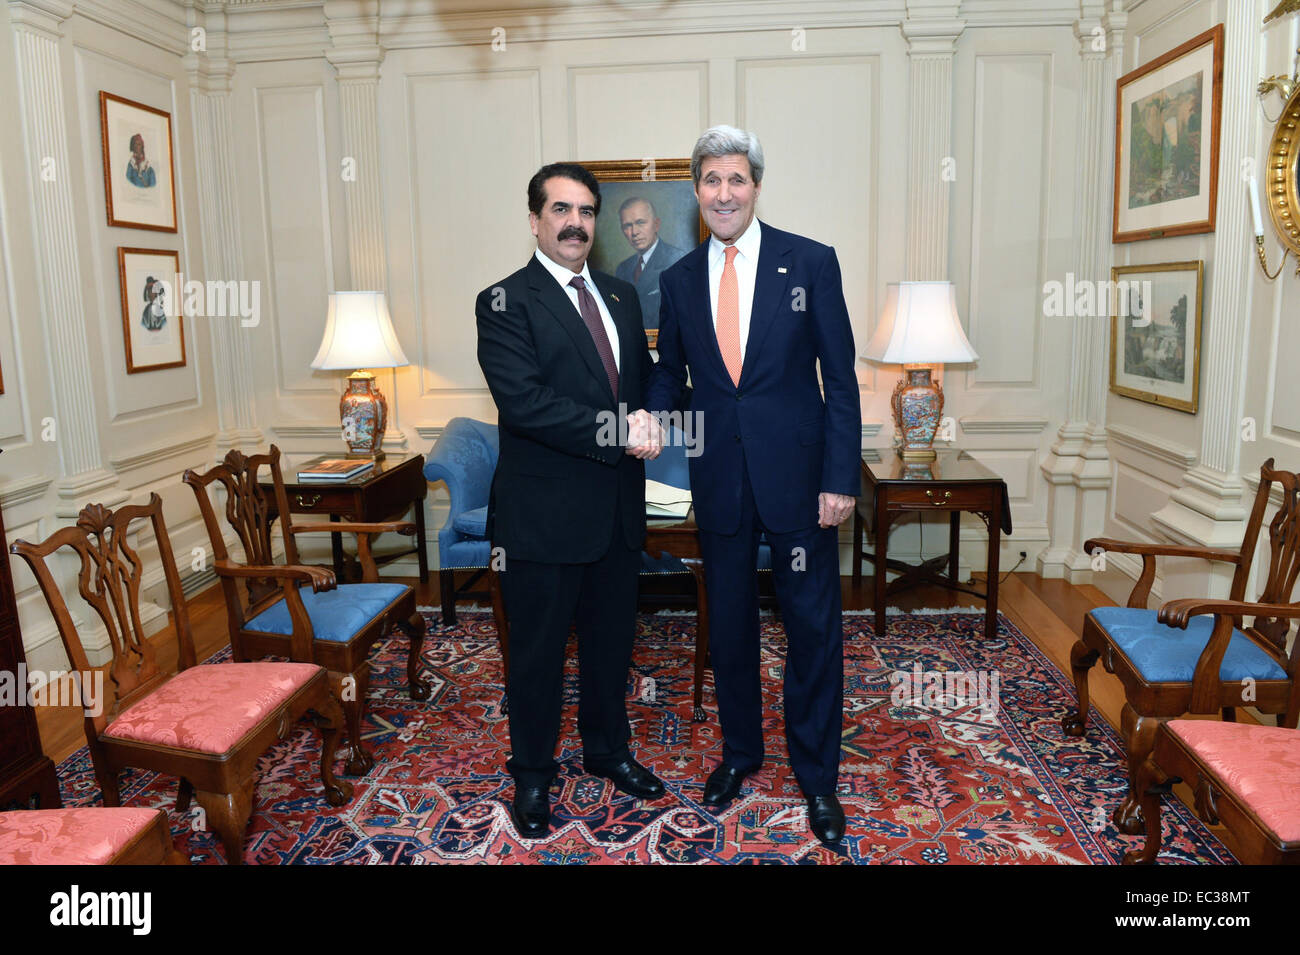 U.S. Secretary of State John Kerry meets with Pakistan Chief of Army Staff Raheel Sharif at the Department of State - Stock Image